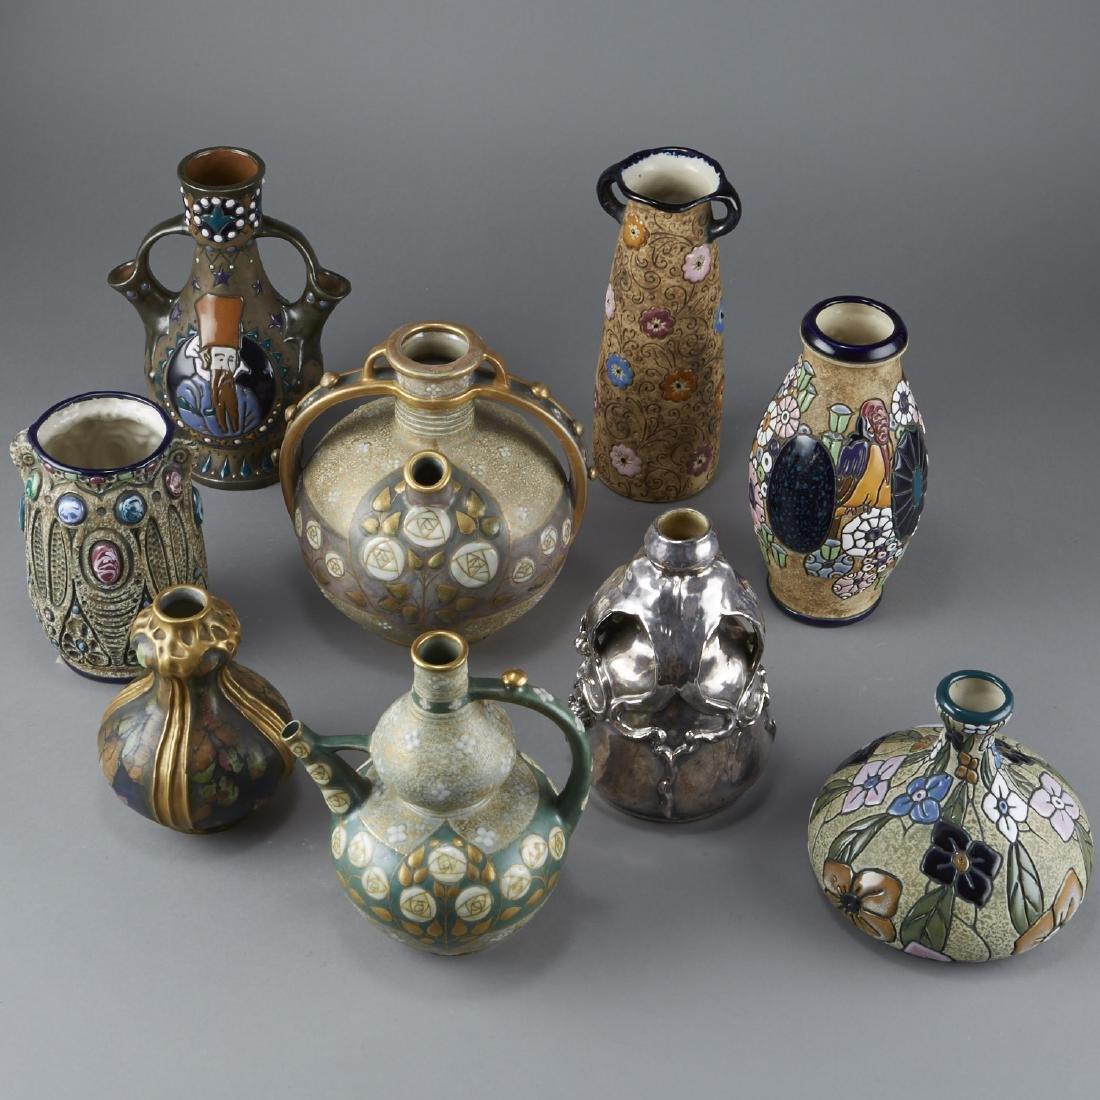 Group of 9 Amphora Pottery